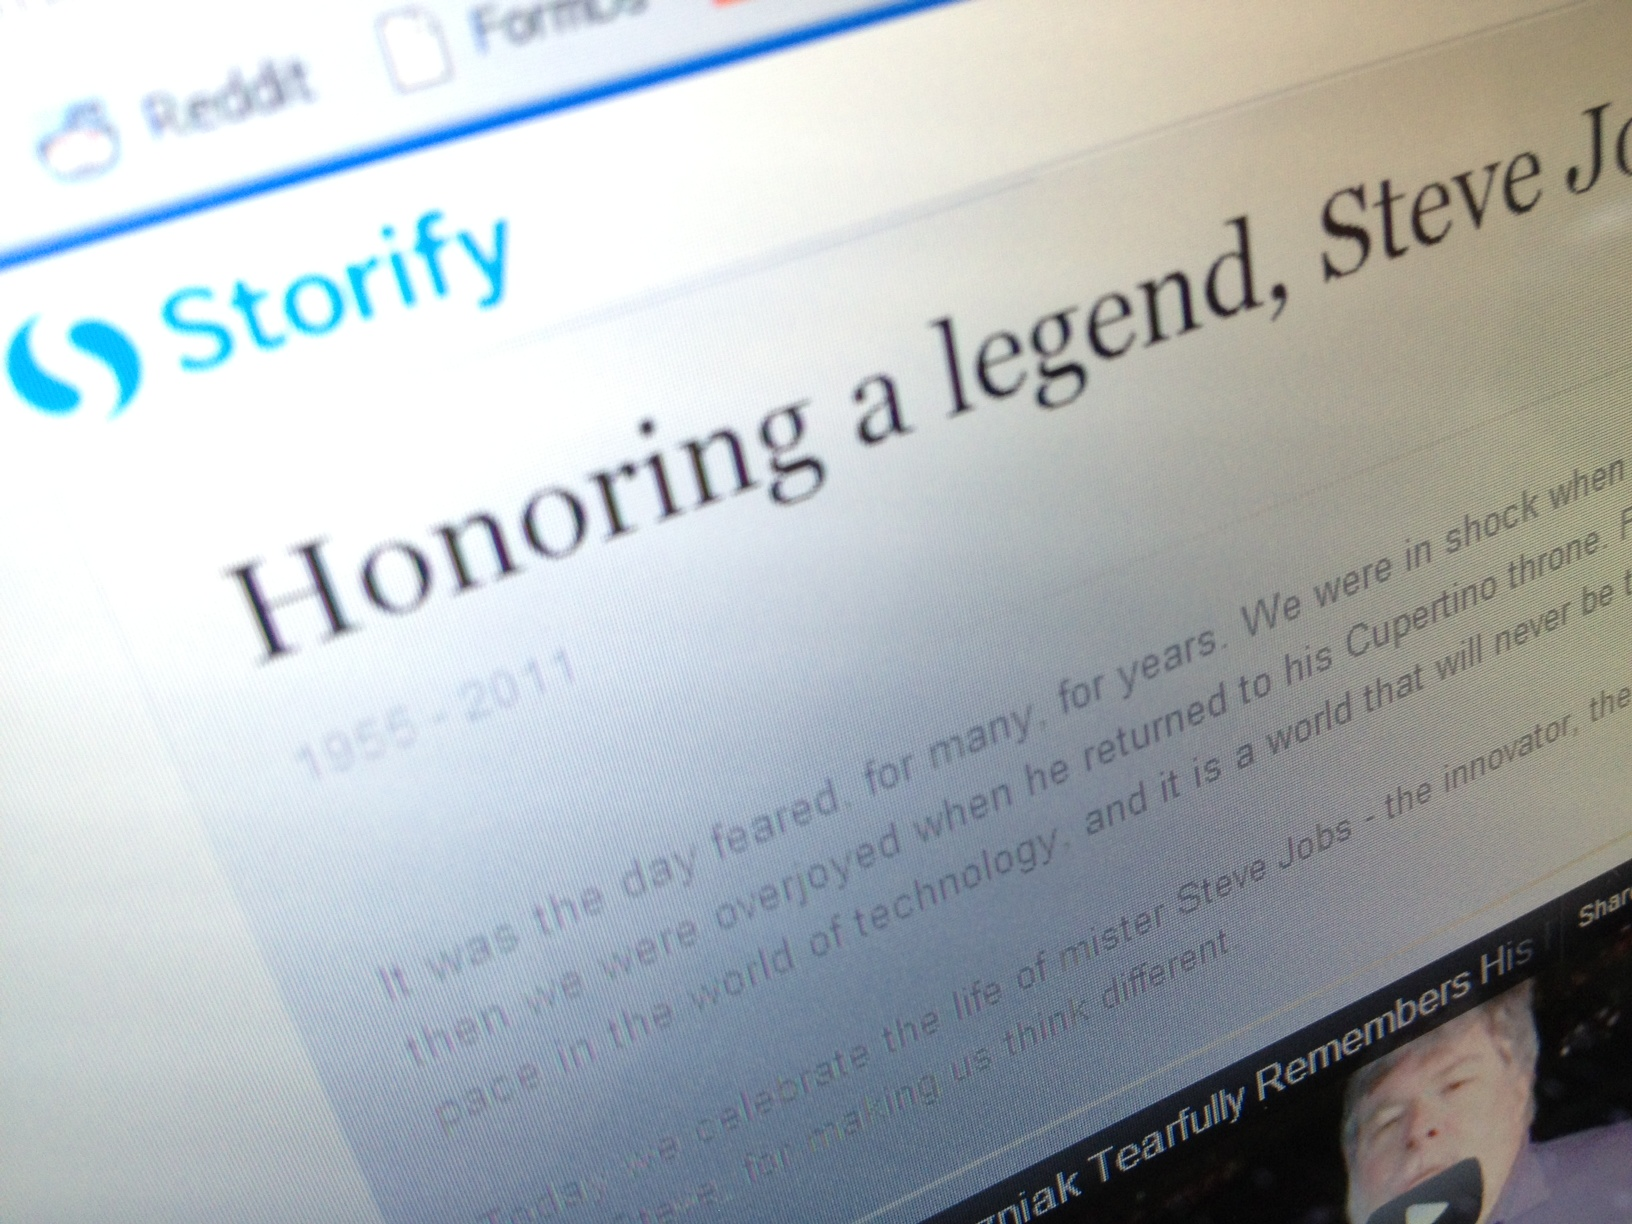 Storify adds App.net as a source for its curated story line archives